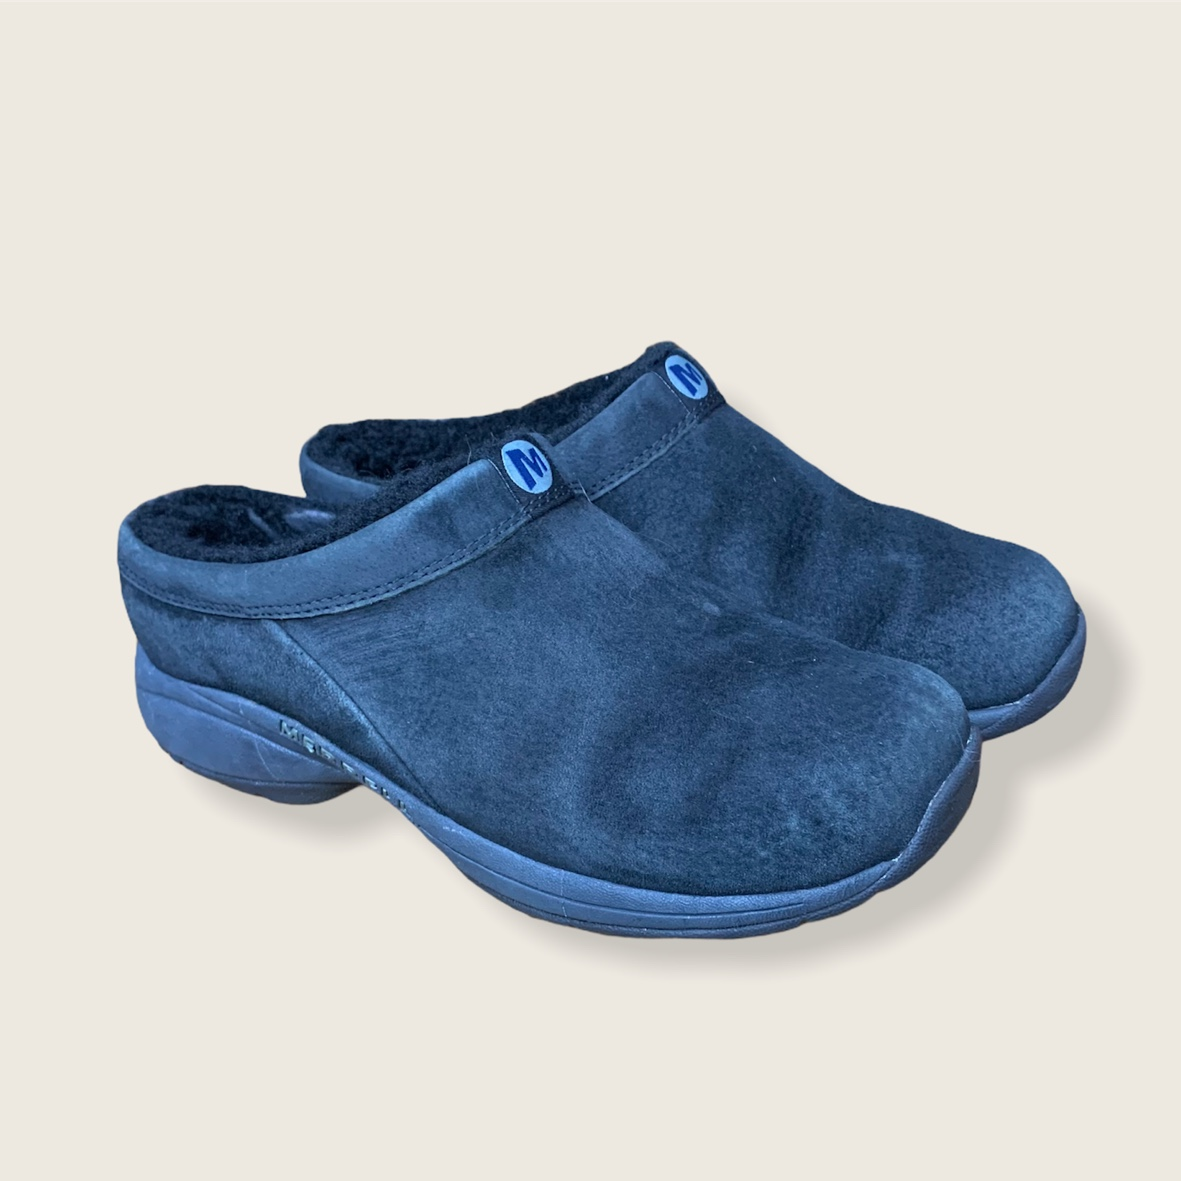 Product Image 1 - merrell clogs black suede w/